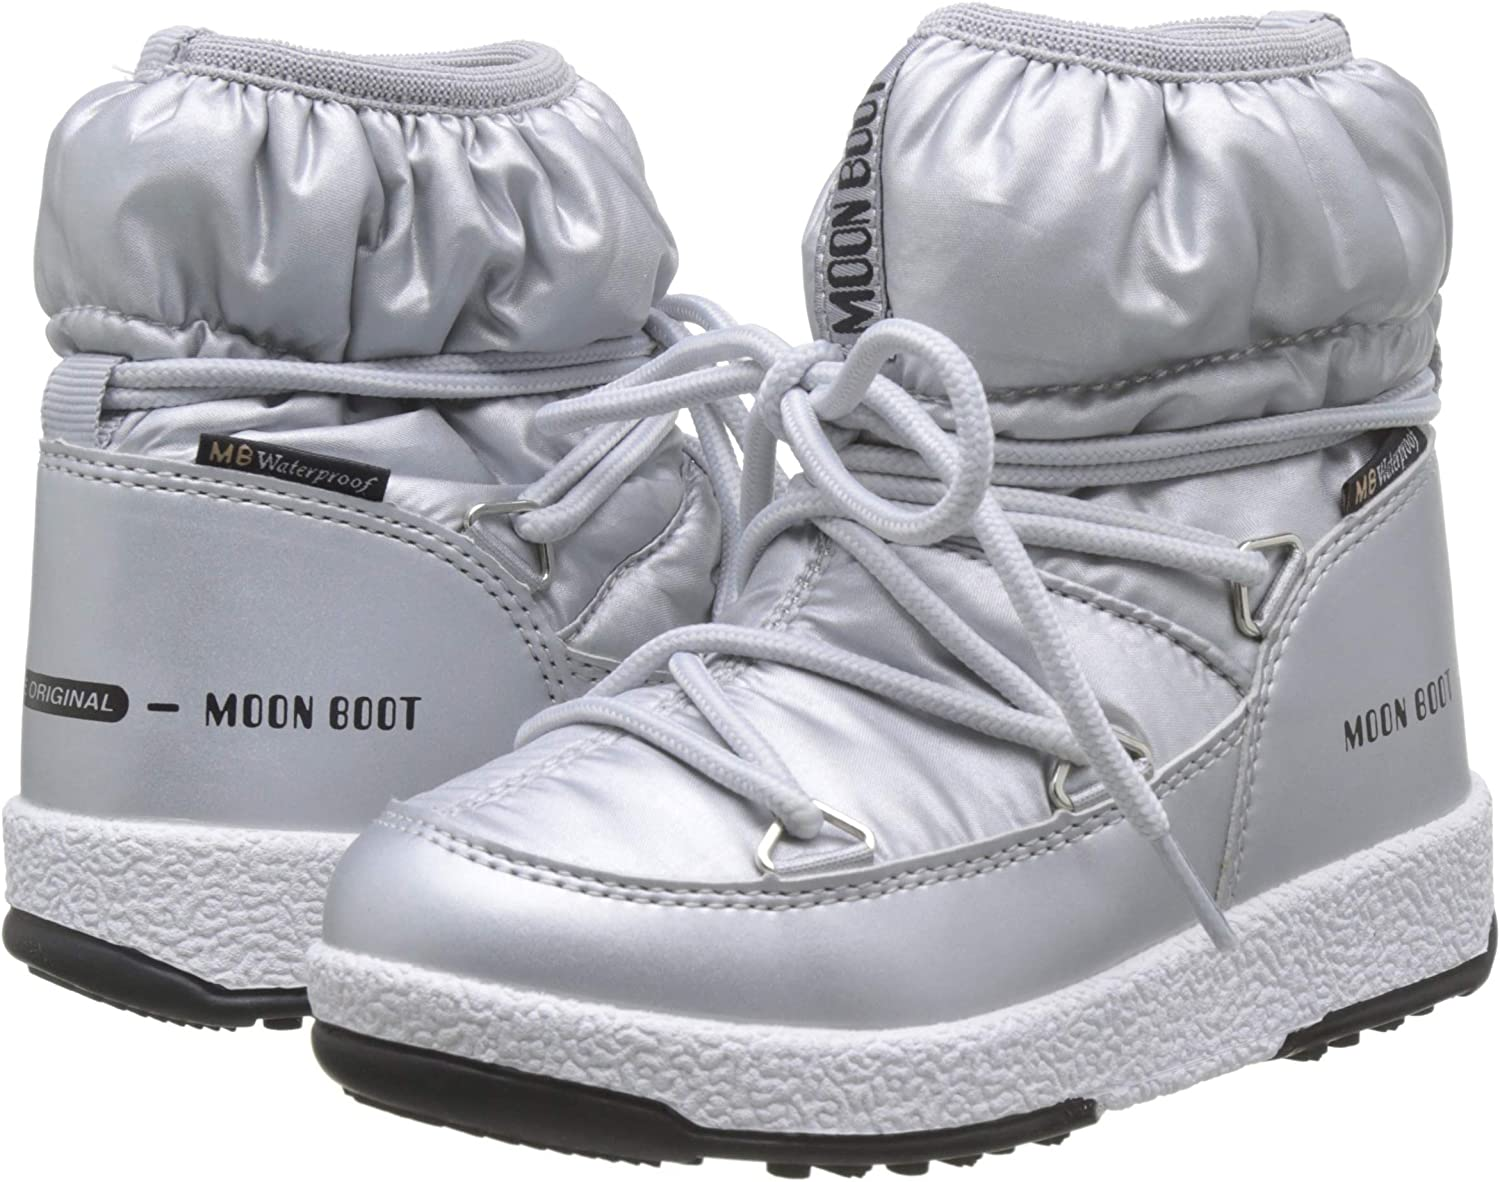 Bottes de Neige Fille Moon-boot Jr Girl Low Nylon WP